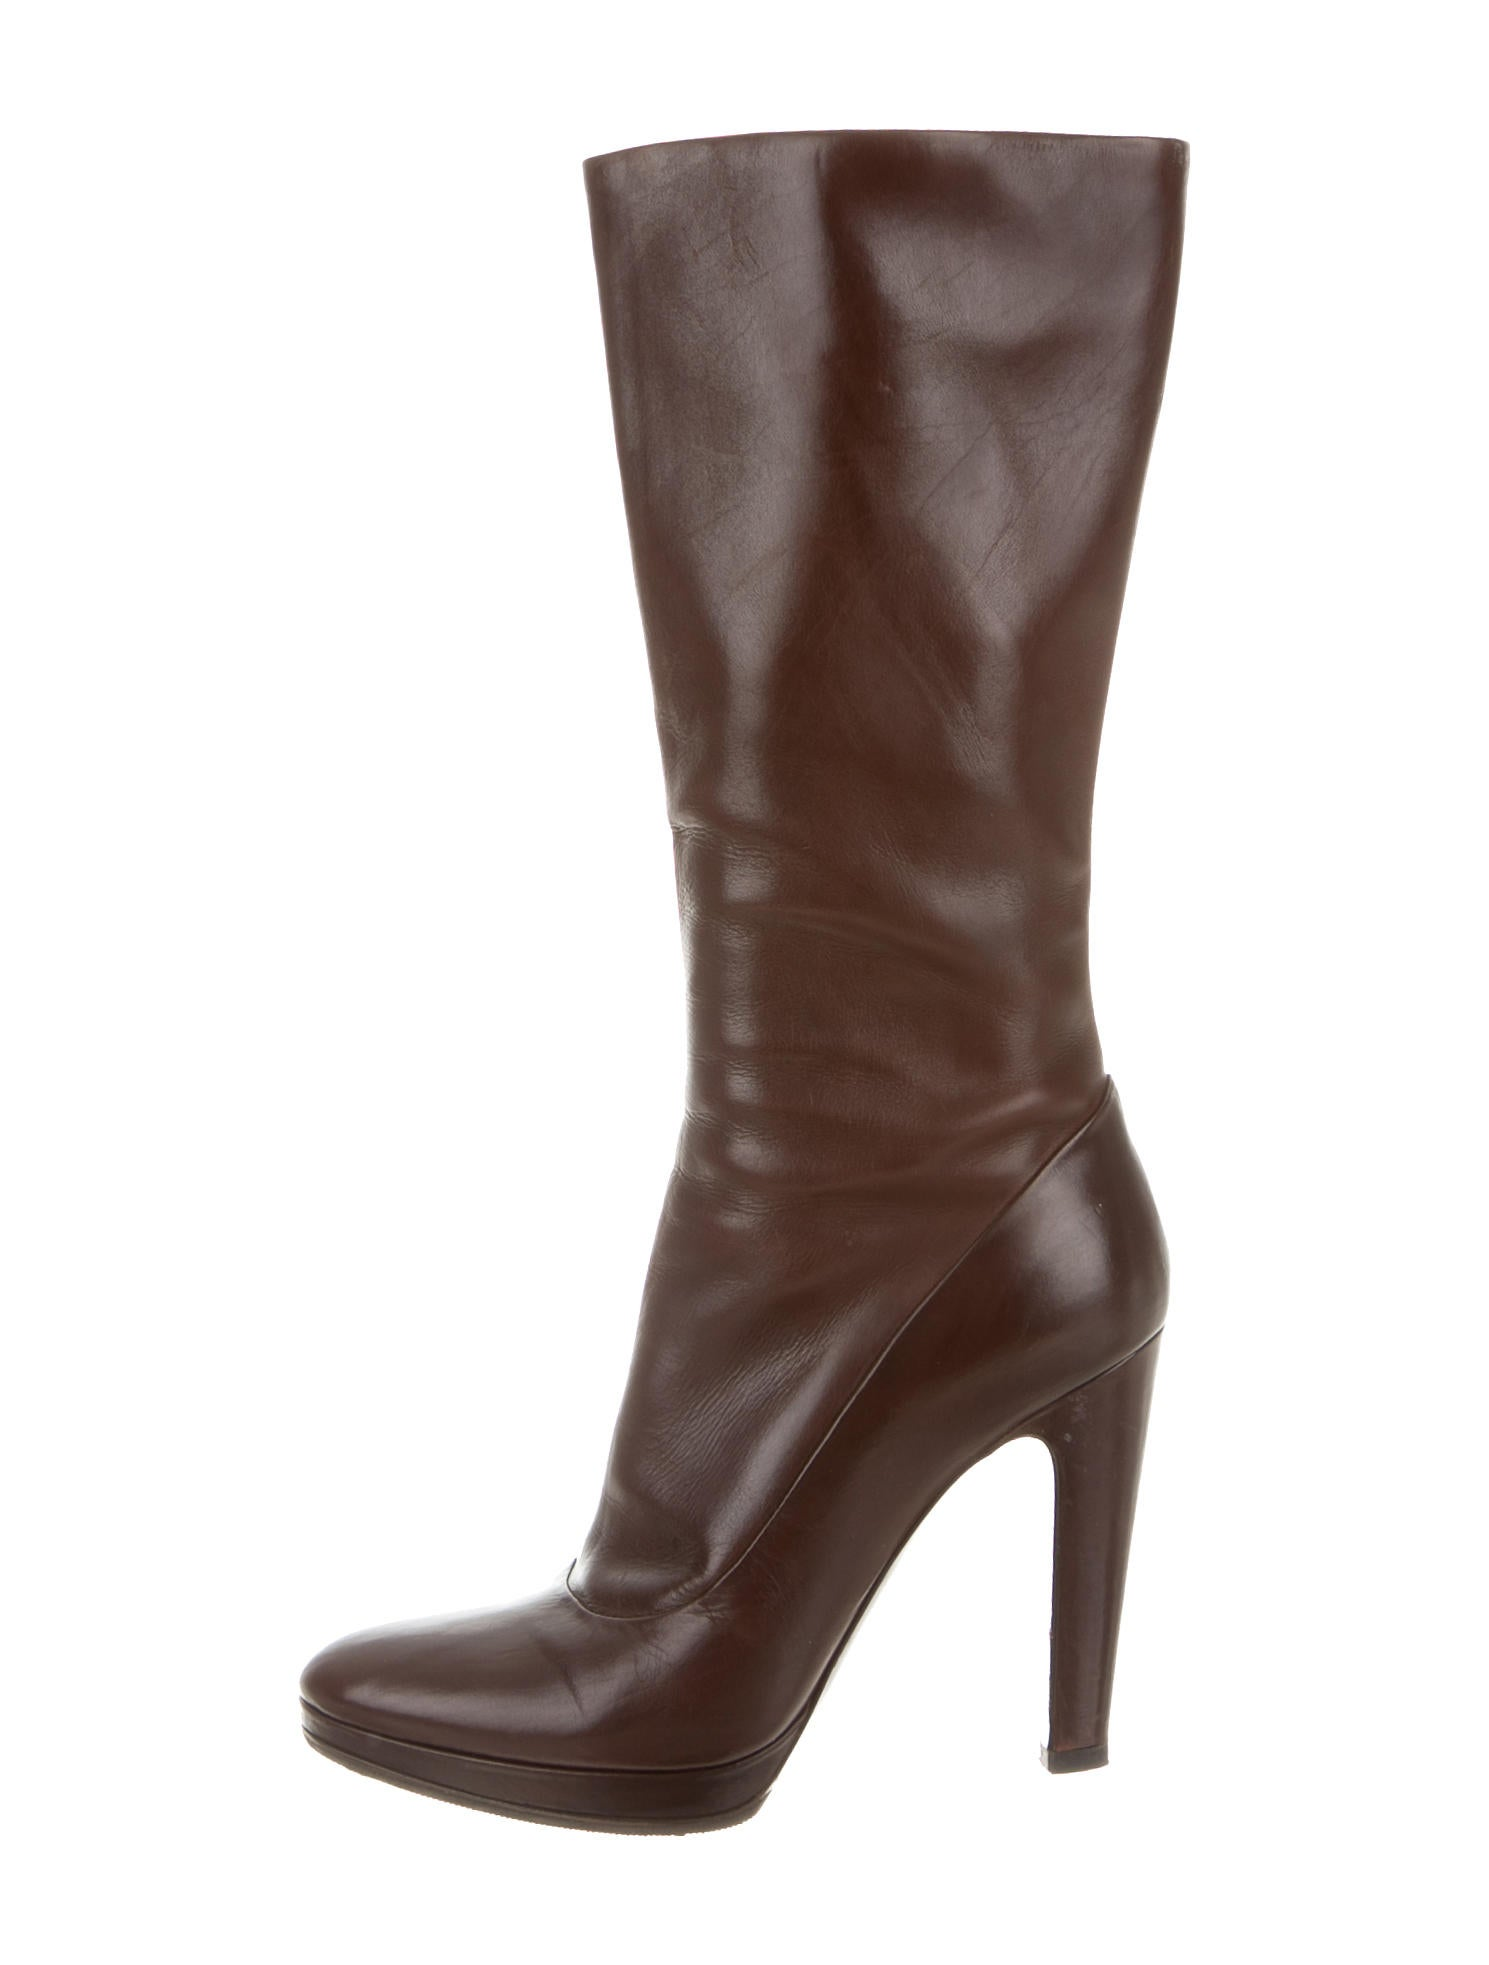 prada leather mid calf boots shoes pra113503 the